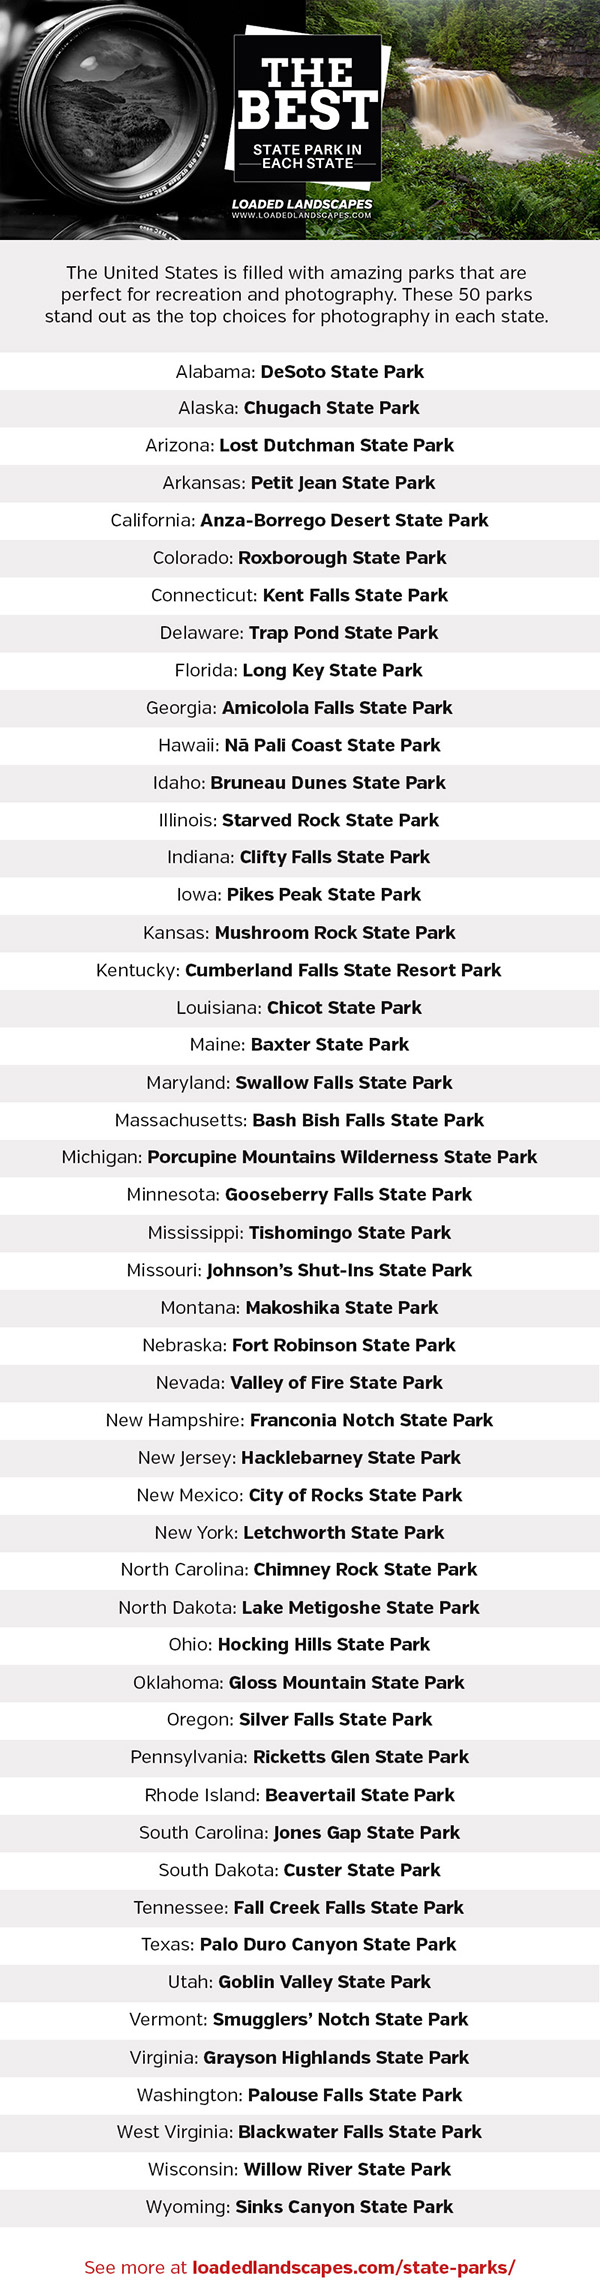 The Best State Parks in Each State